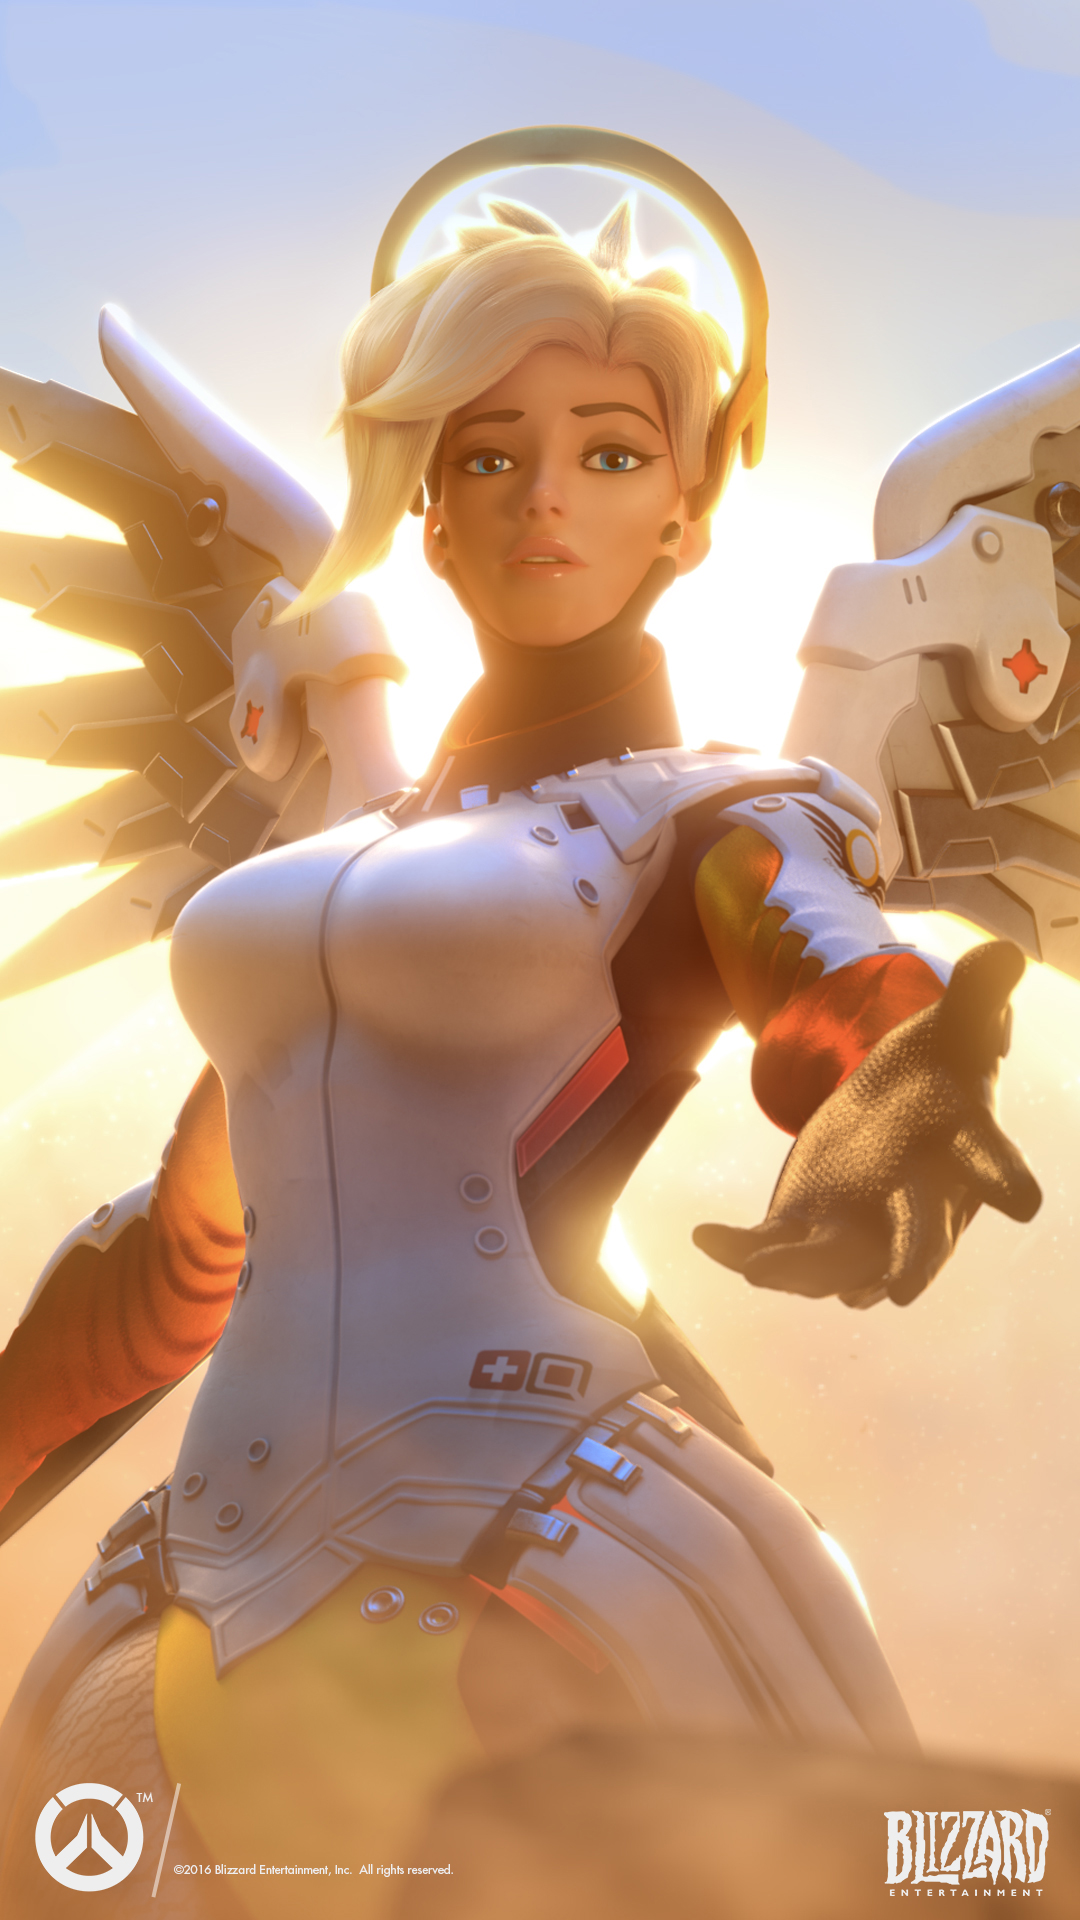 Overwatch HD Wallpaper 21